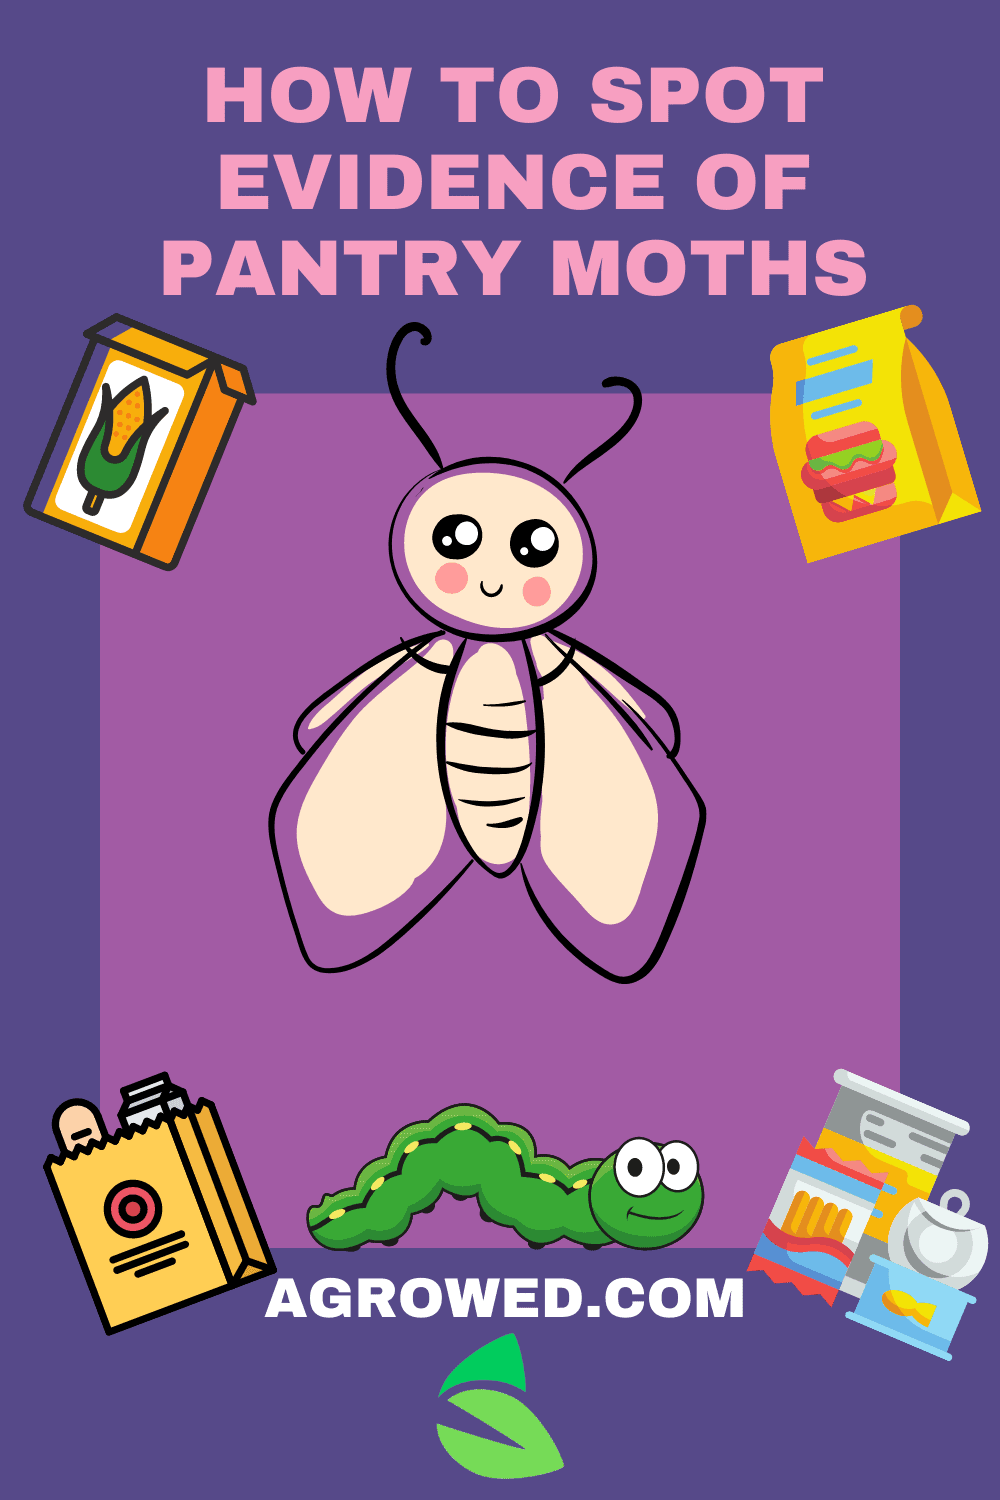 How to Spot Evidence of Pantry Moths 1